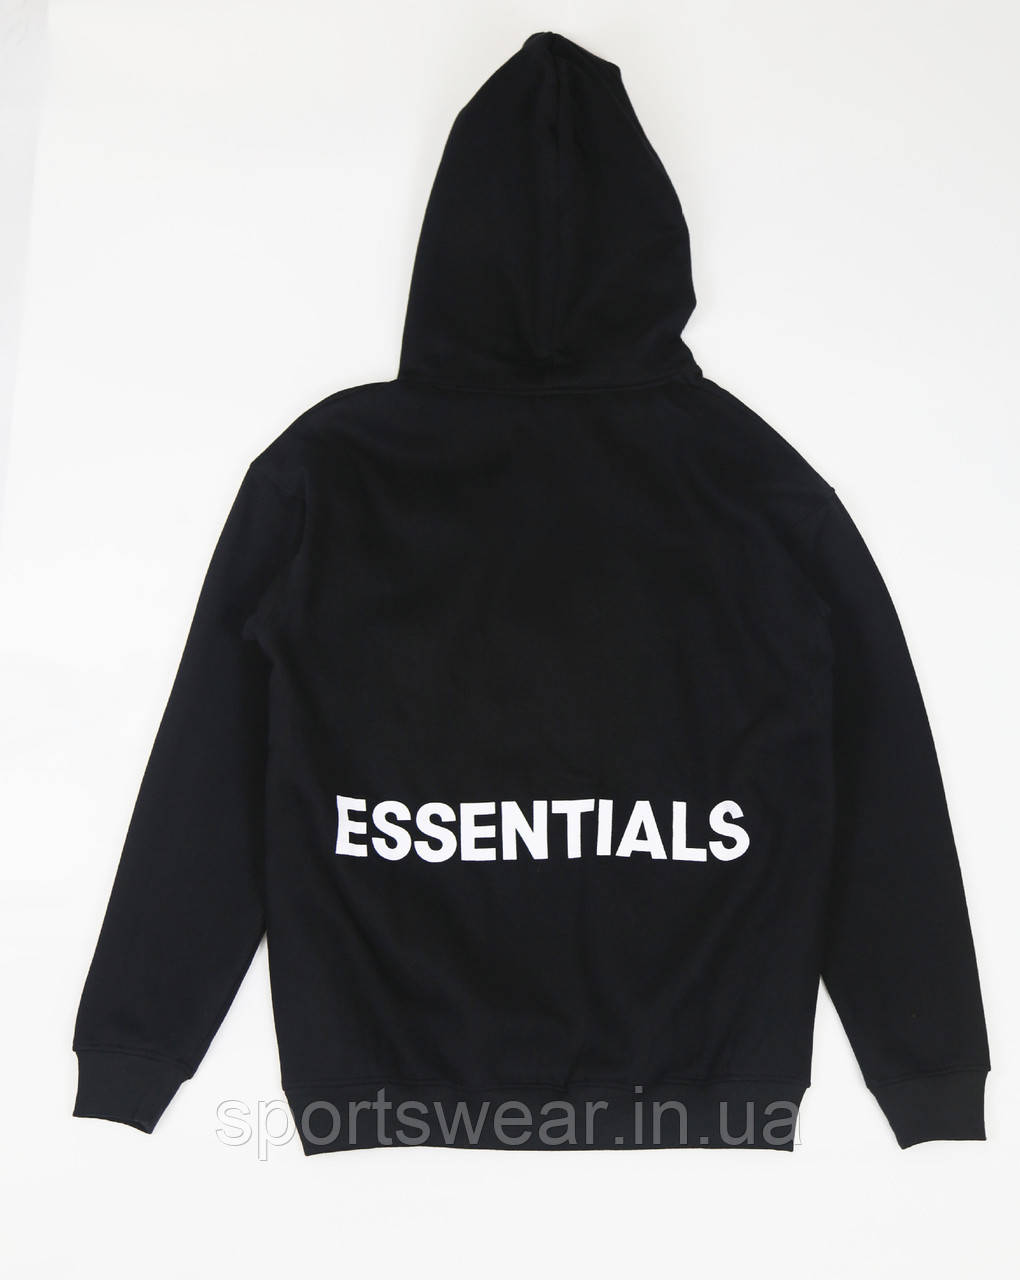 Черное худи Fear Of God Essentials Logo, унисекс